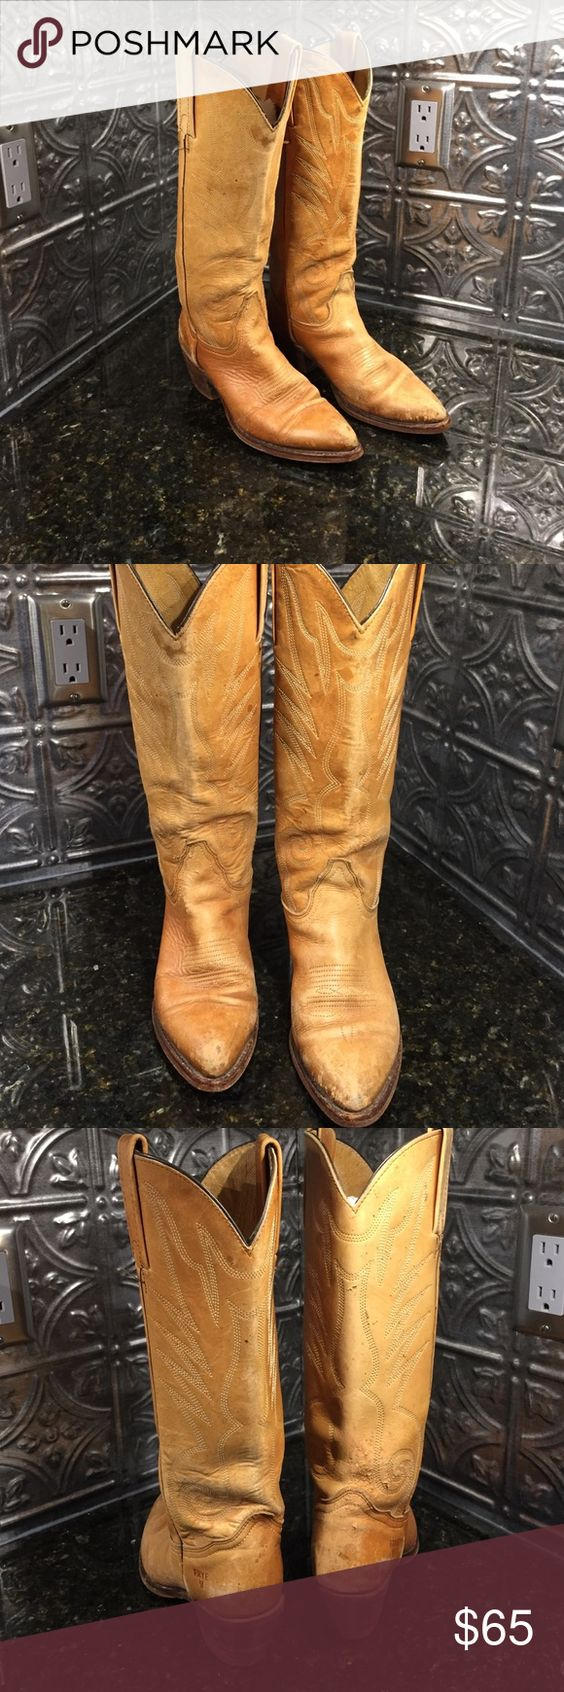 FRYE COWBOY BOOTS SIZE 6B Light tan cowboy boot style frye women's boots. Has wear to them as shown in pictures. Tall boots. Frye Shoes Heeled Boots